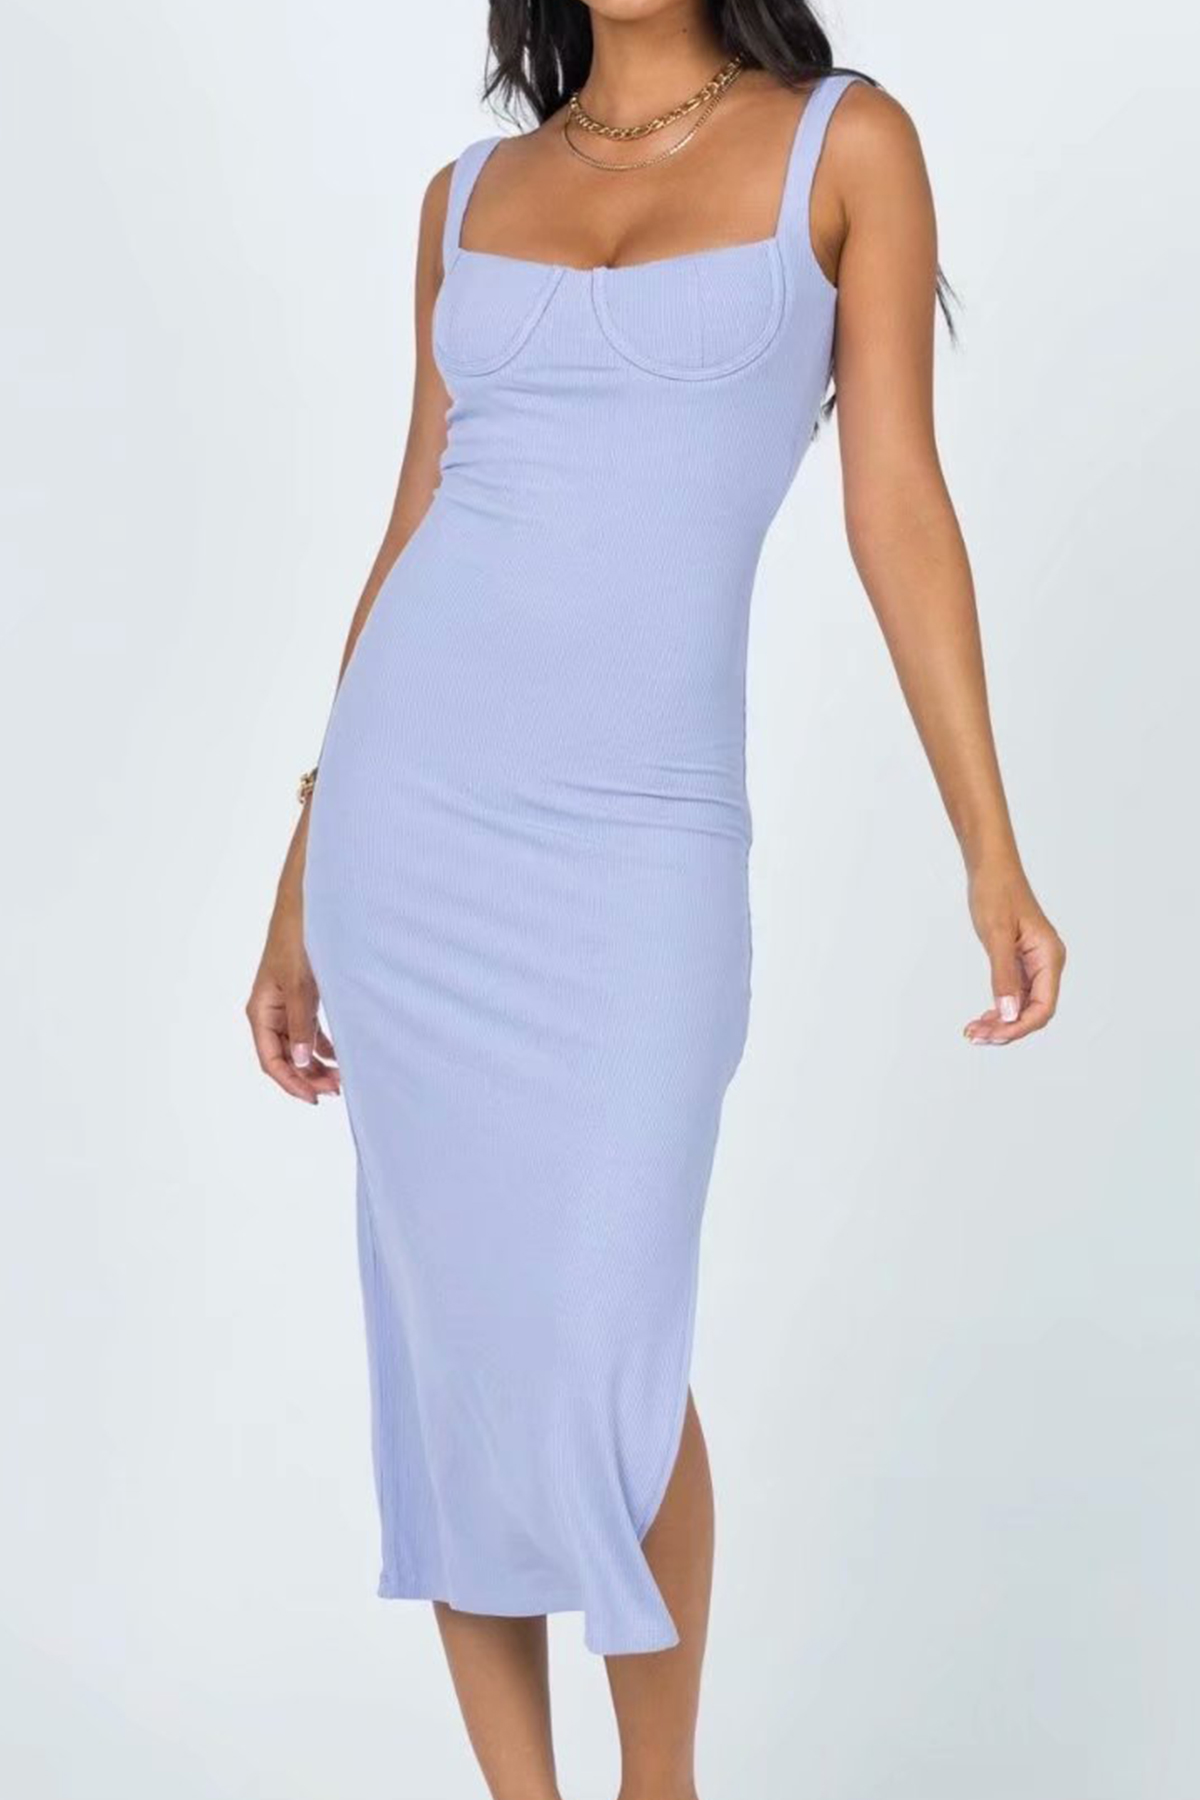 THE MOODSS Adriel Midi Dress-1